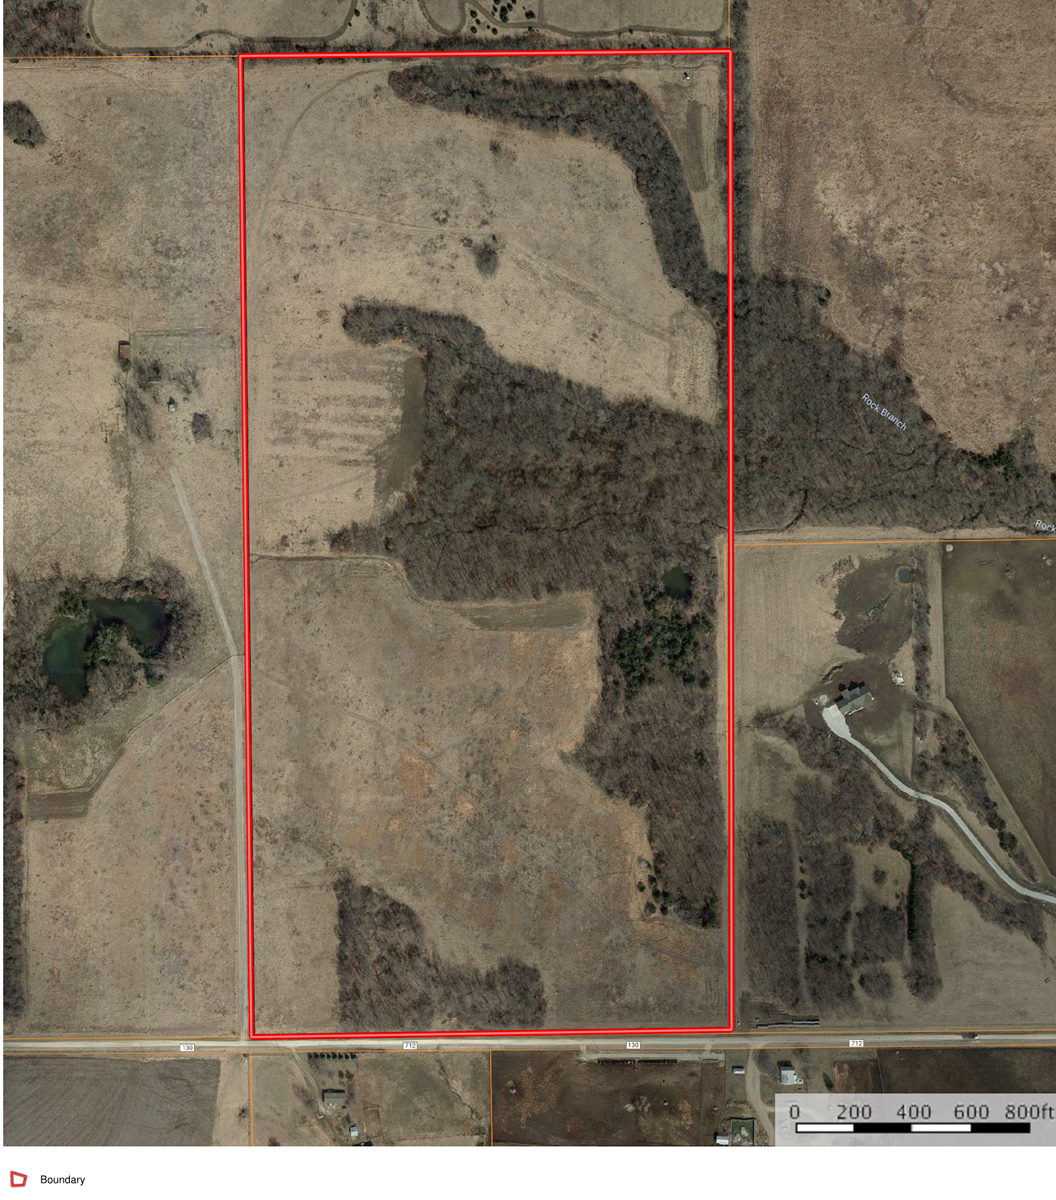 77 Acres M/L For Sale Carroll County MO